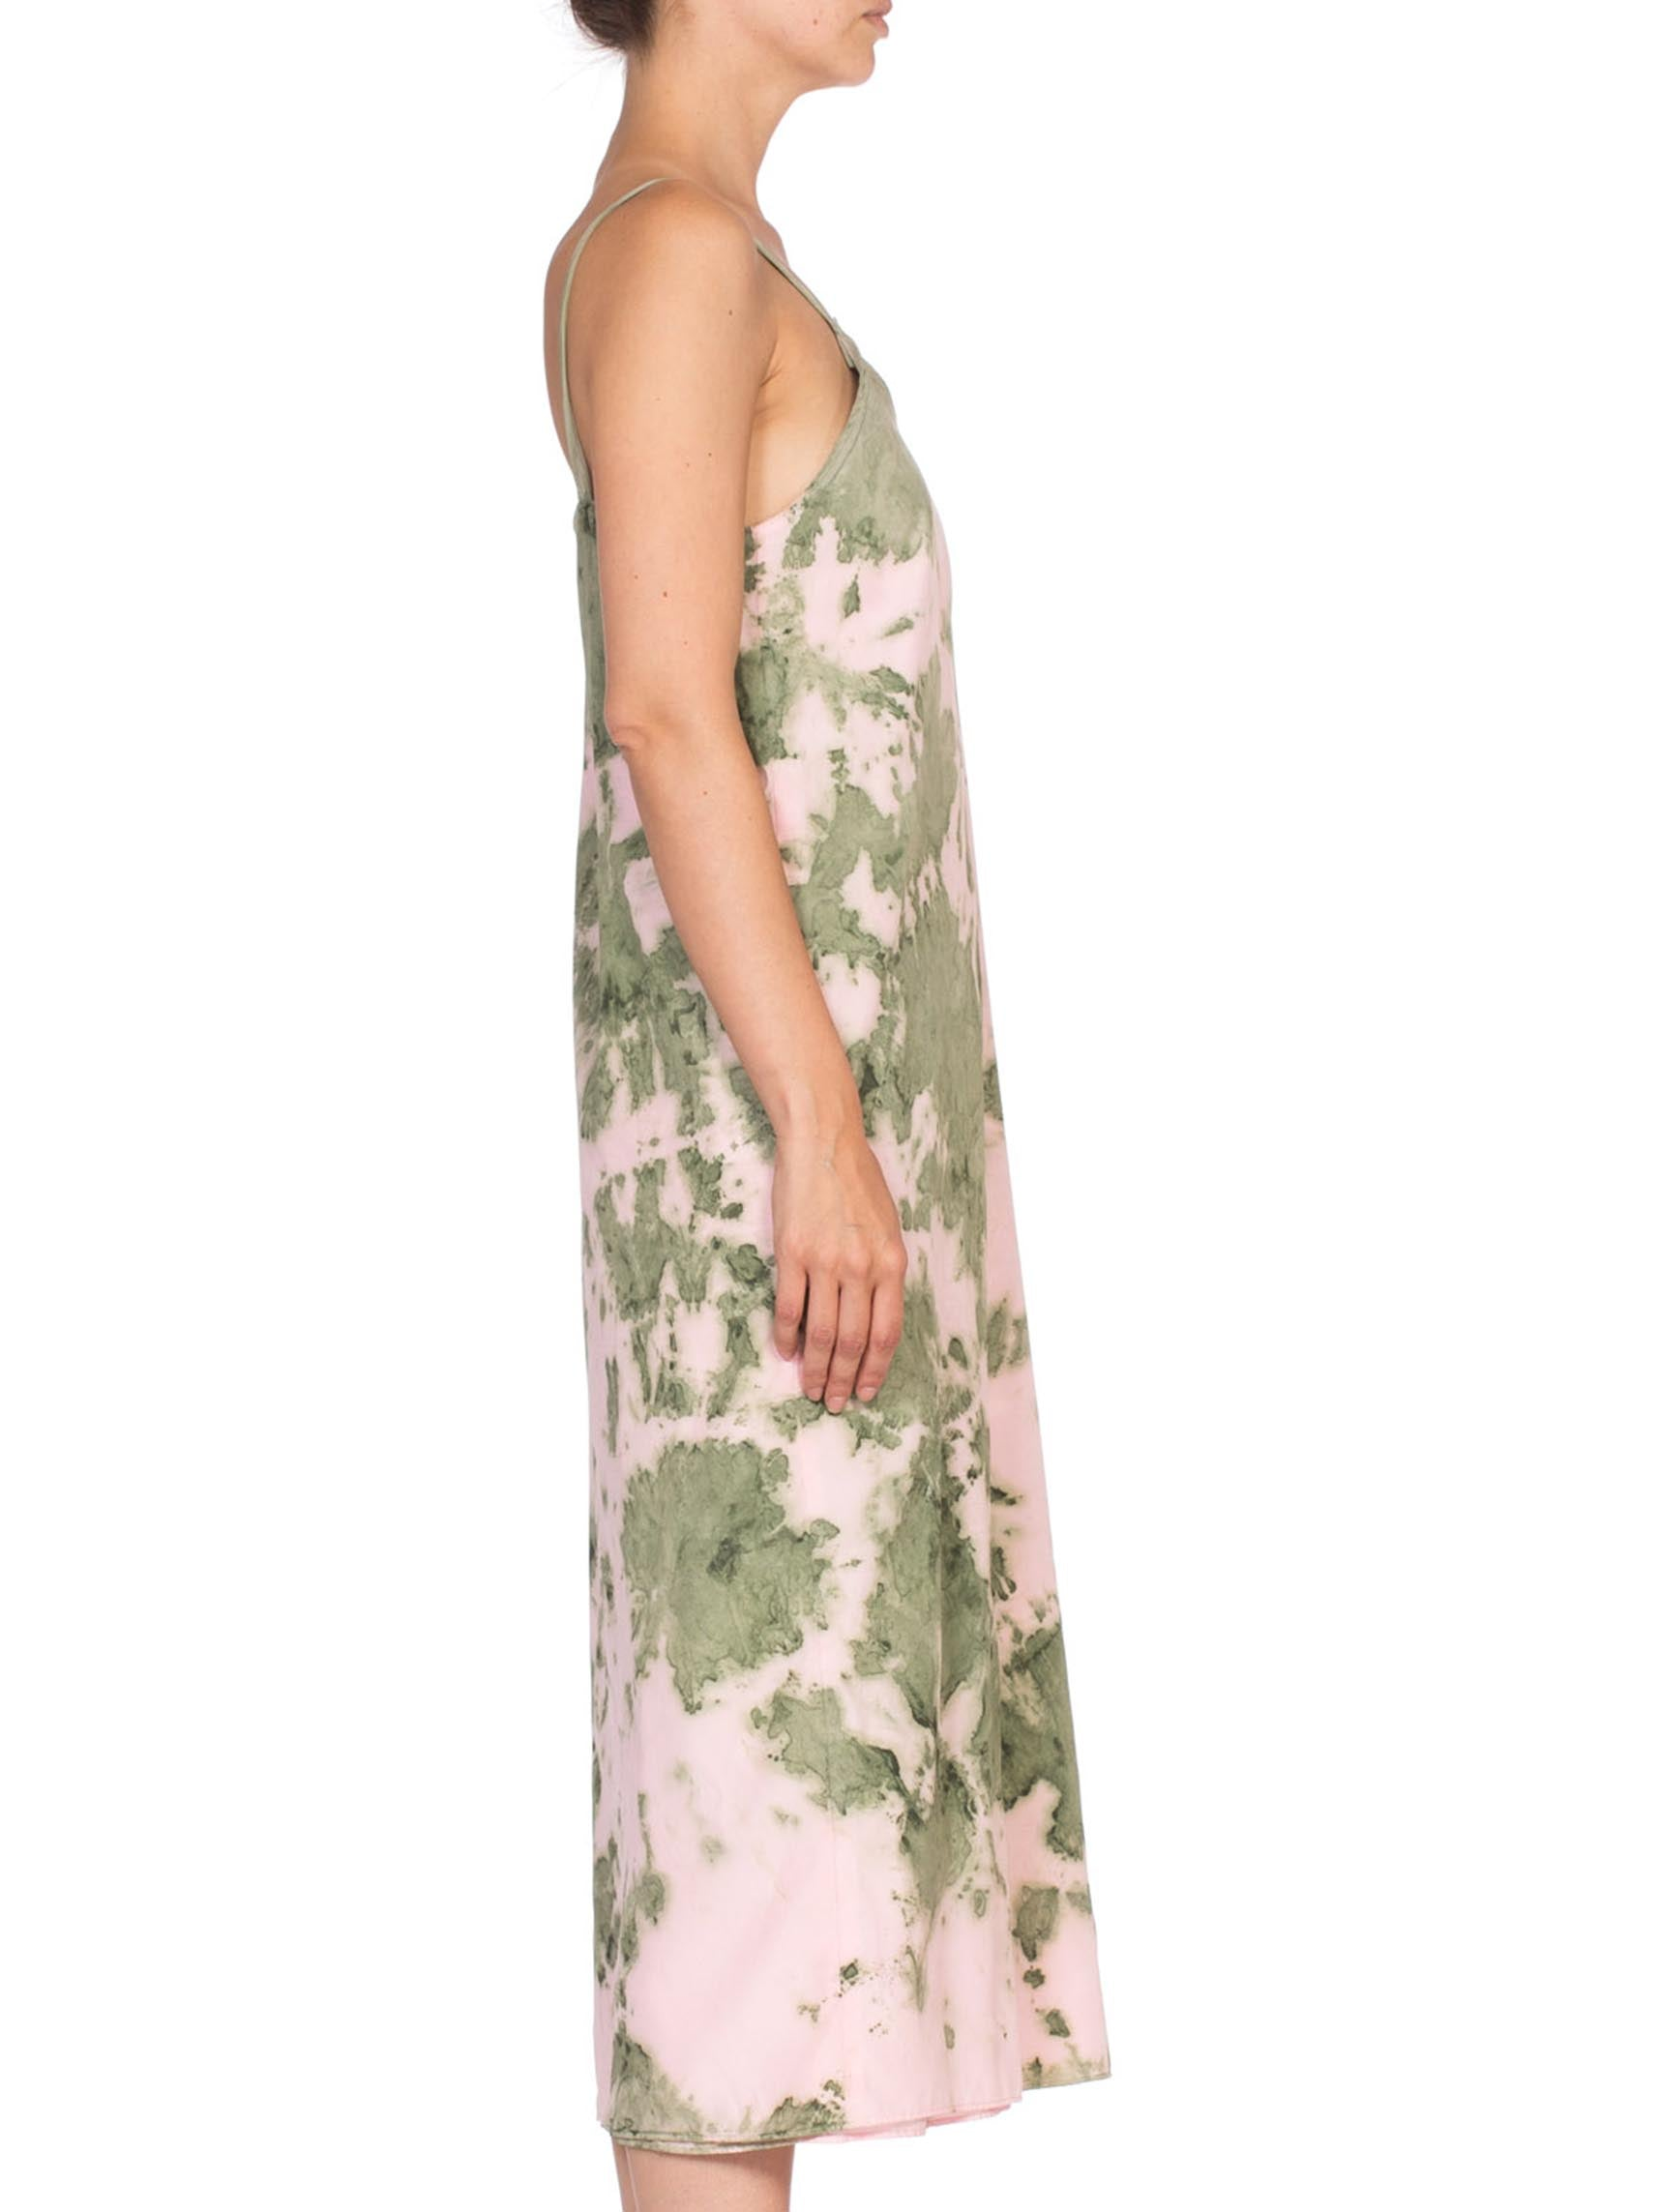 1970'S Baby Pink & Green Silk Crepe De Chine Tie Dye Slip Dress